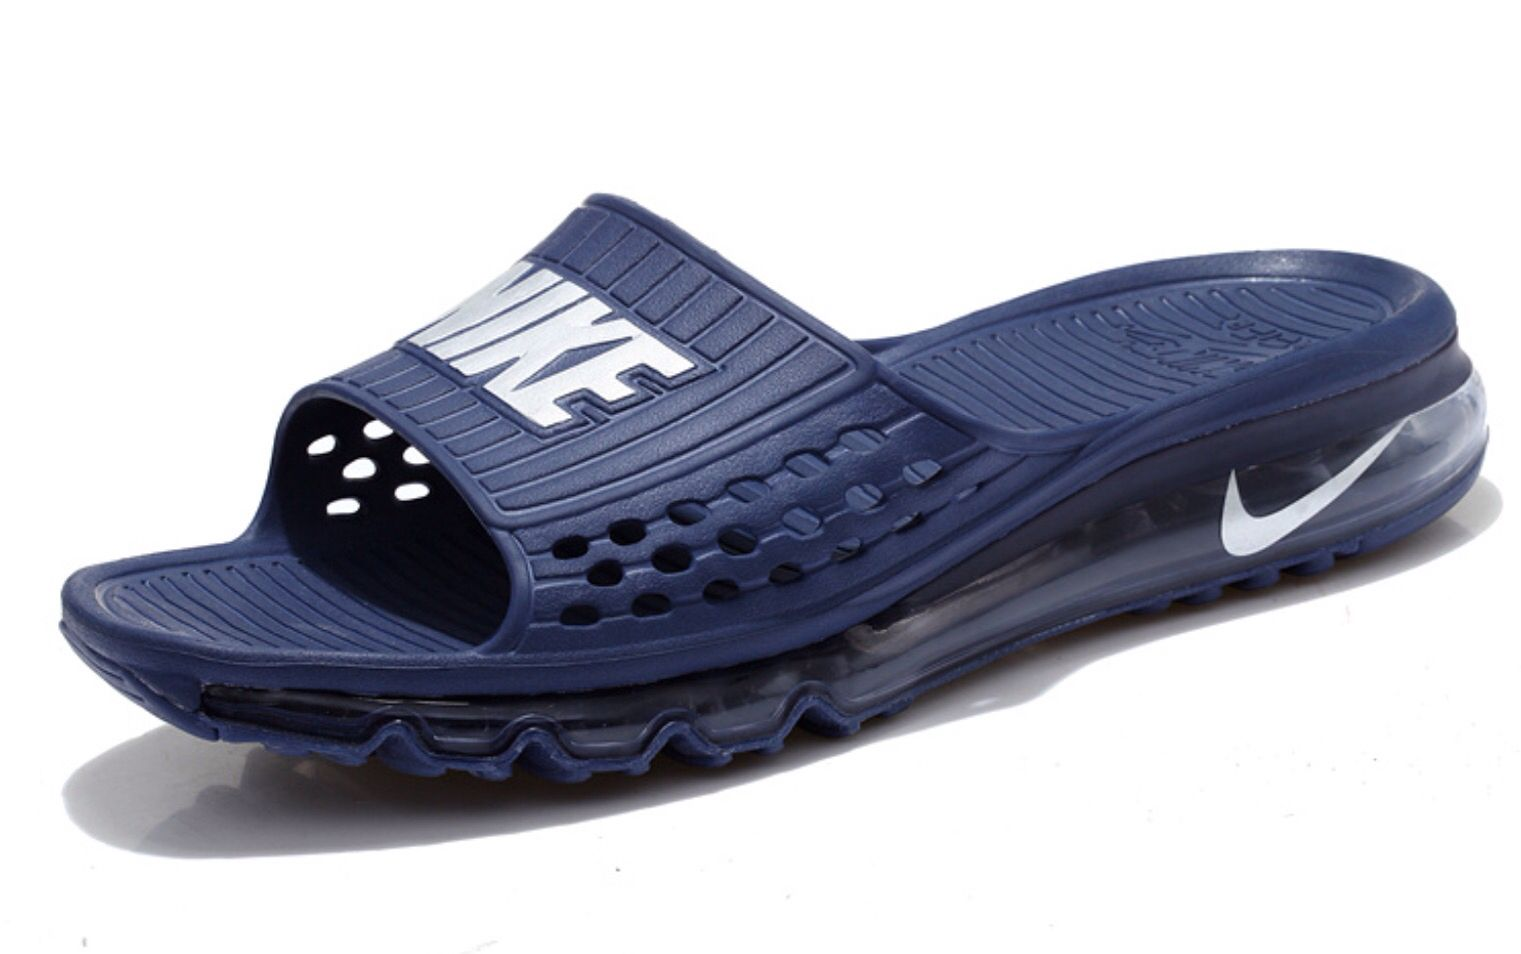 sneakers for cheap 48e34 42469 Sandals...OMG sandals Air Max Sandals, must have.... | Nike ...